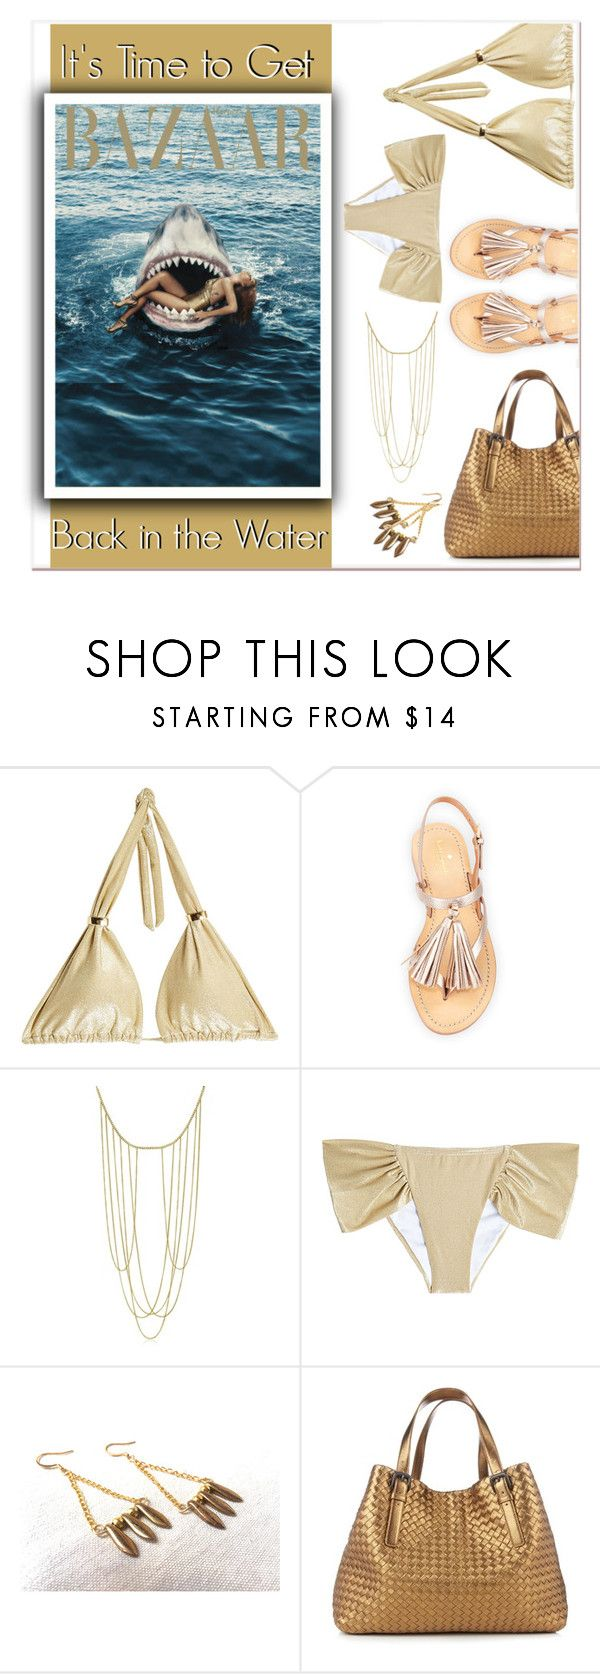 Get Back in the Water by funnfiber on Polyvore featuring OndadeMar, Kate Spade, Bottega Veneta and Adoriana; #gold #bikini #shark #swimsuit #swim #suit #jaws #funny #sandals #bodydchain #spike #earrings #totebag